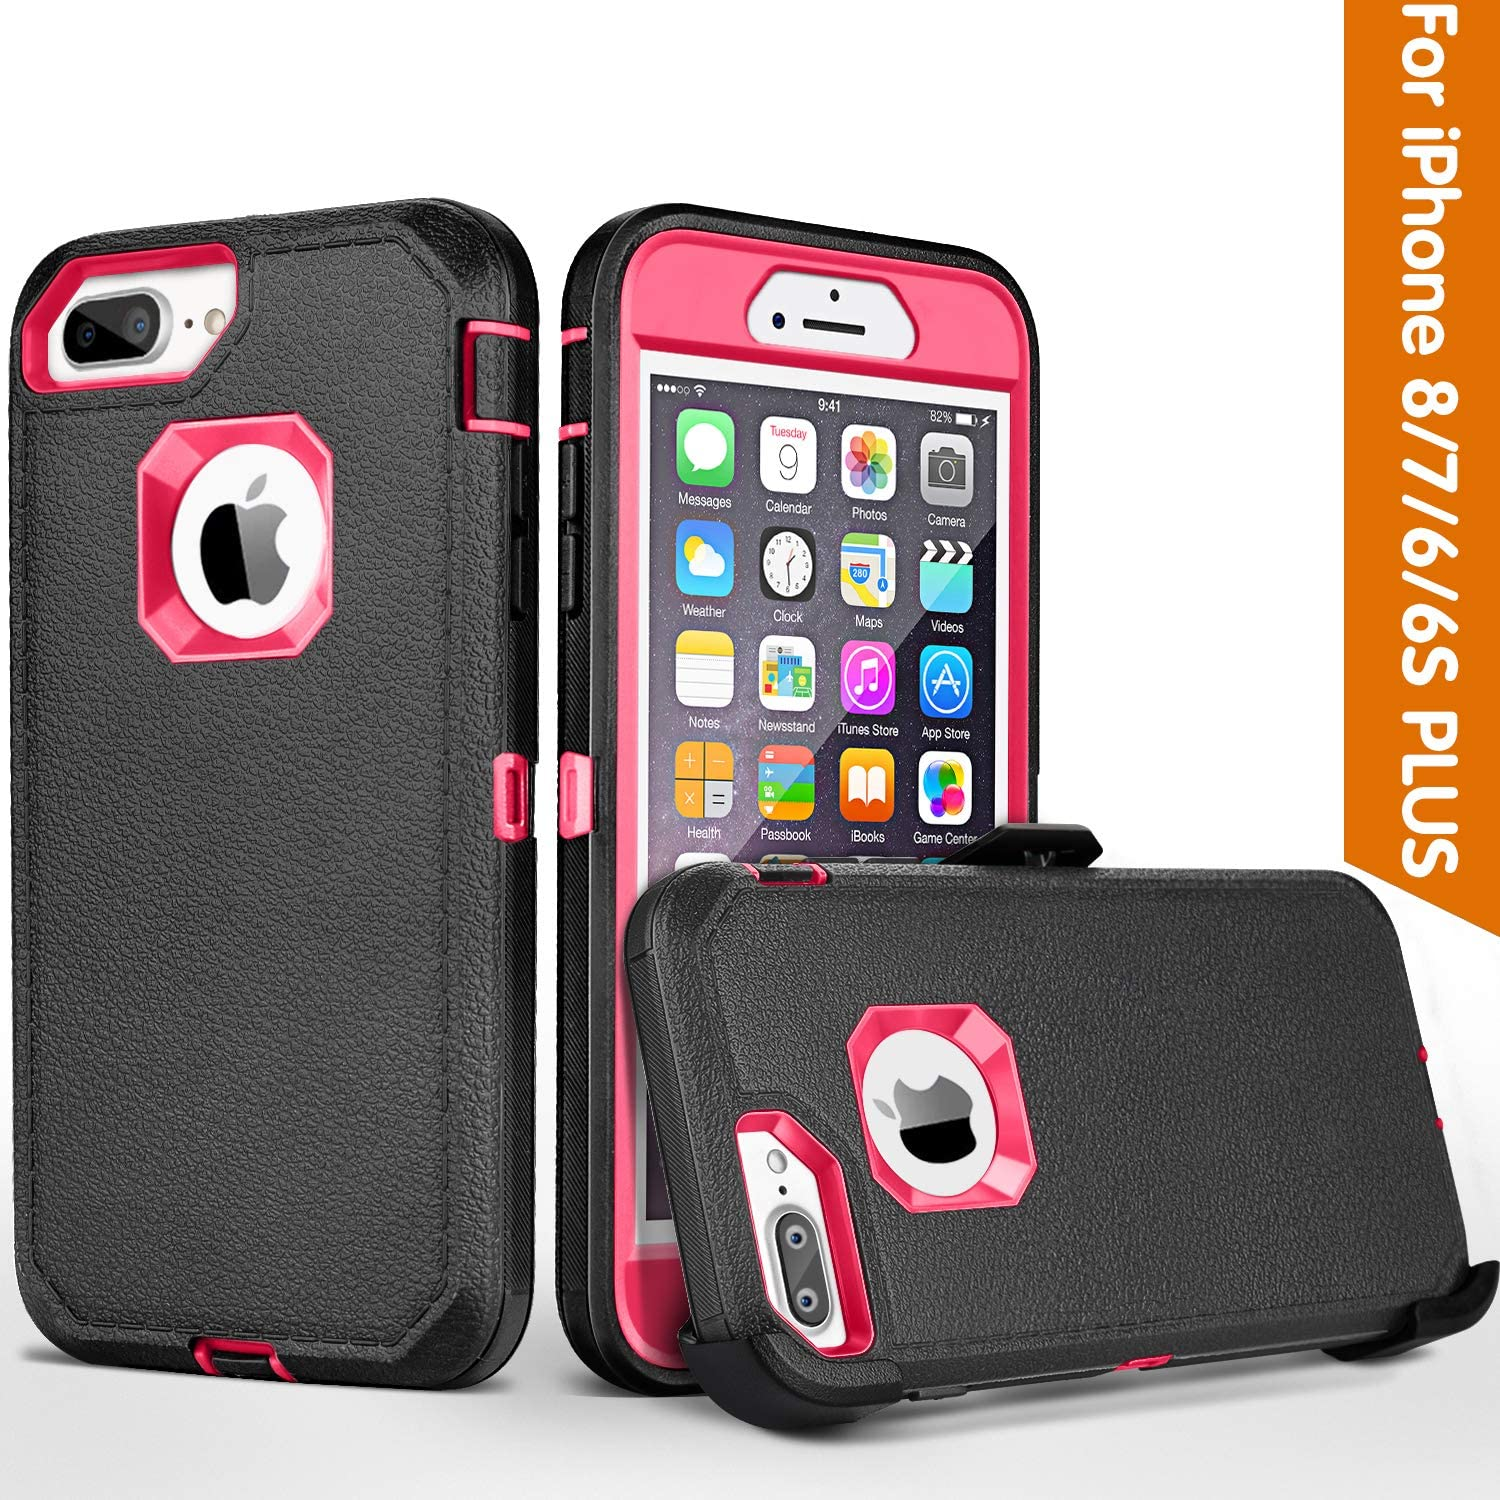 FOGEEK iPhone 8 Plus Case,iPhone 7 Plus Case,iPhone 6s Plus Case, [Dust-Proof] Belt-Clip Heavy Duty Kickstand Cover[Shockproof] for Apple iPhone 8 Plus,iPhone 7 Plus,iPhone 6/6s Plus (Black/Rose)